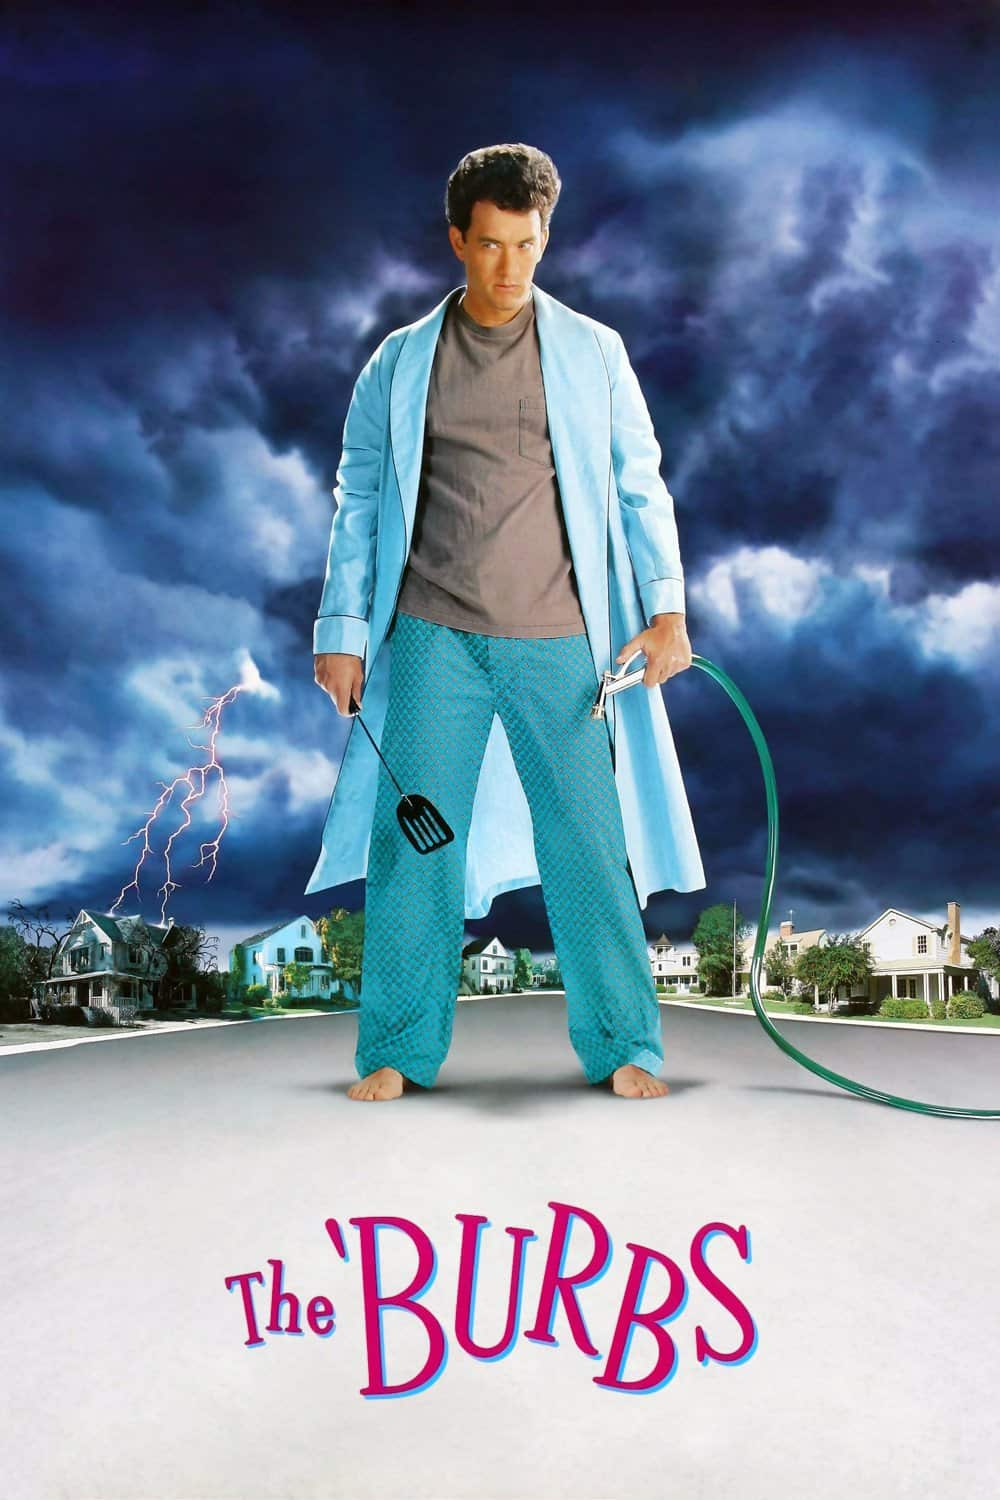 The 'Burbs, 1989